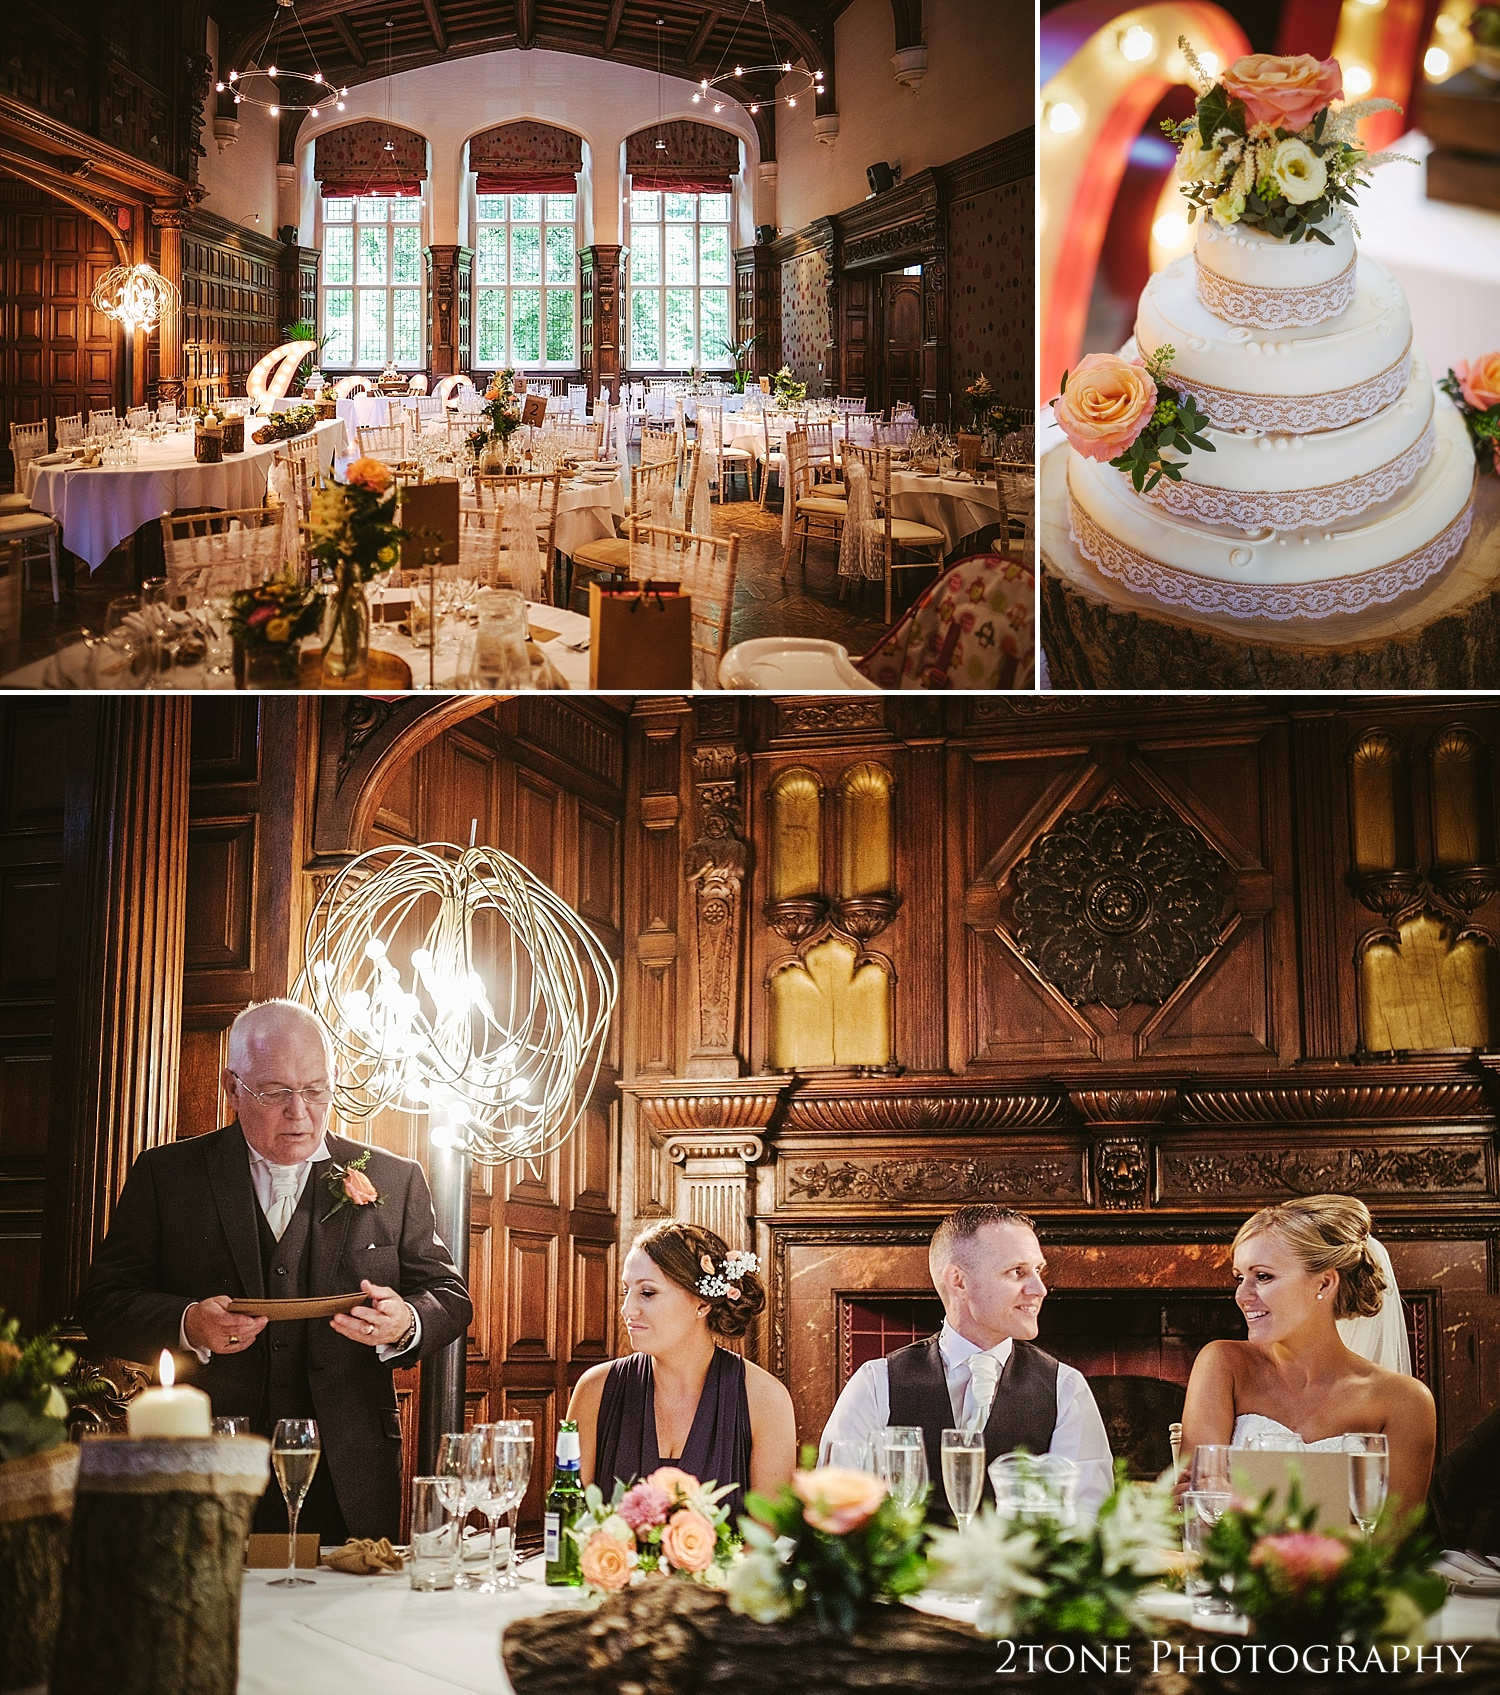 Wedding day speeches at Jesmond Dene House in Newcastle by 2tone Photography www.2tonephotography.co.uk